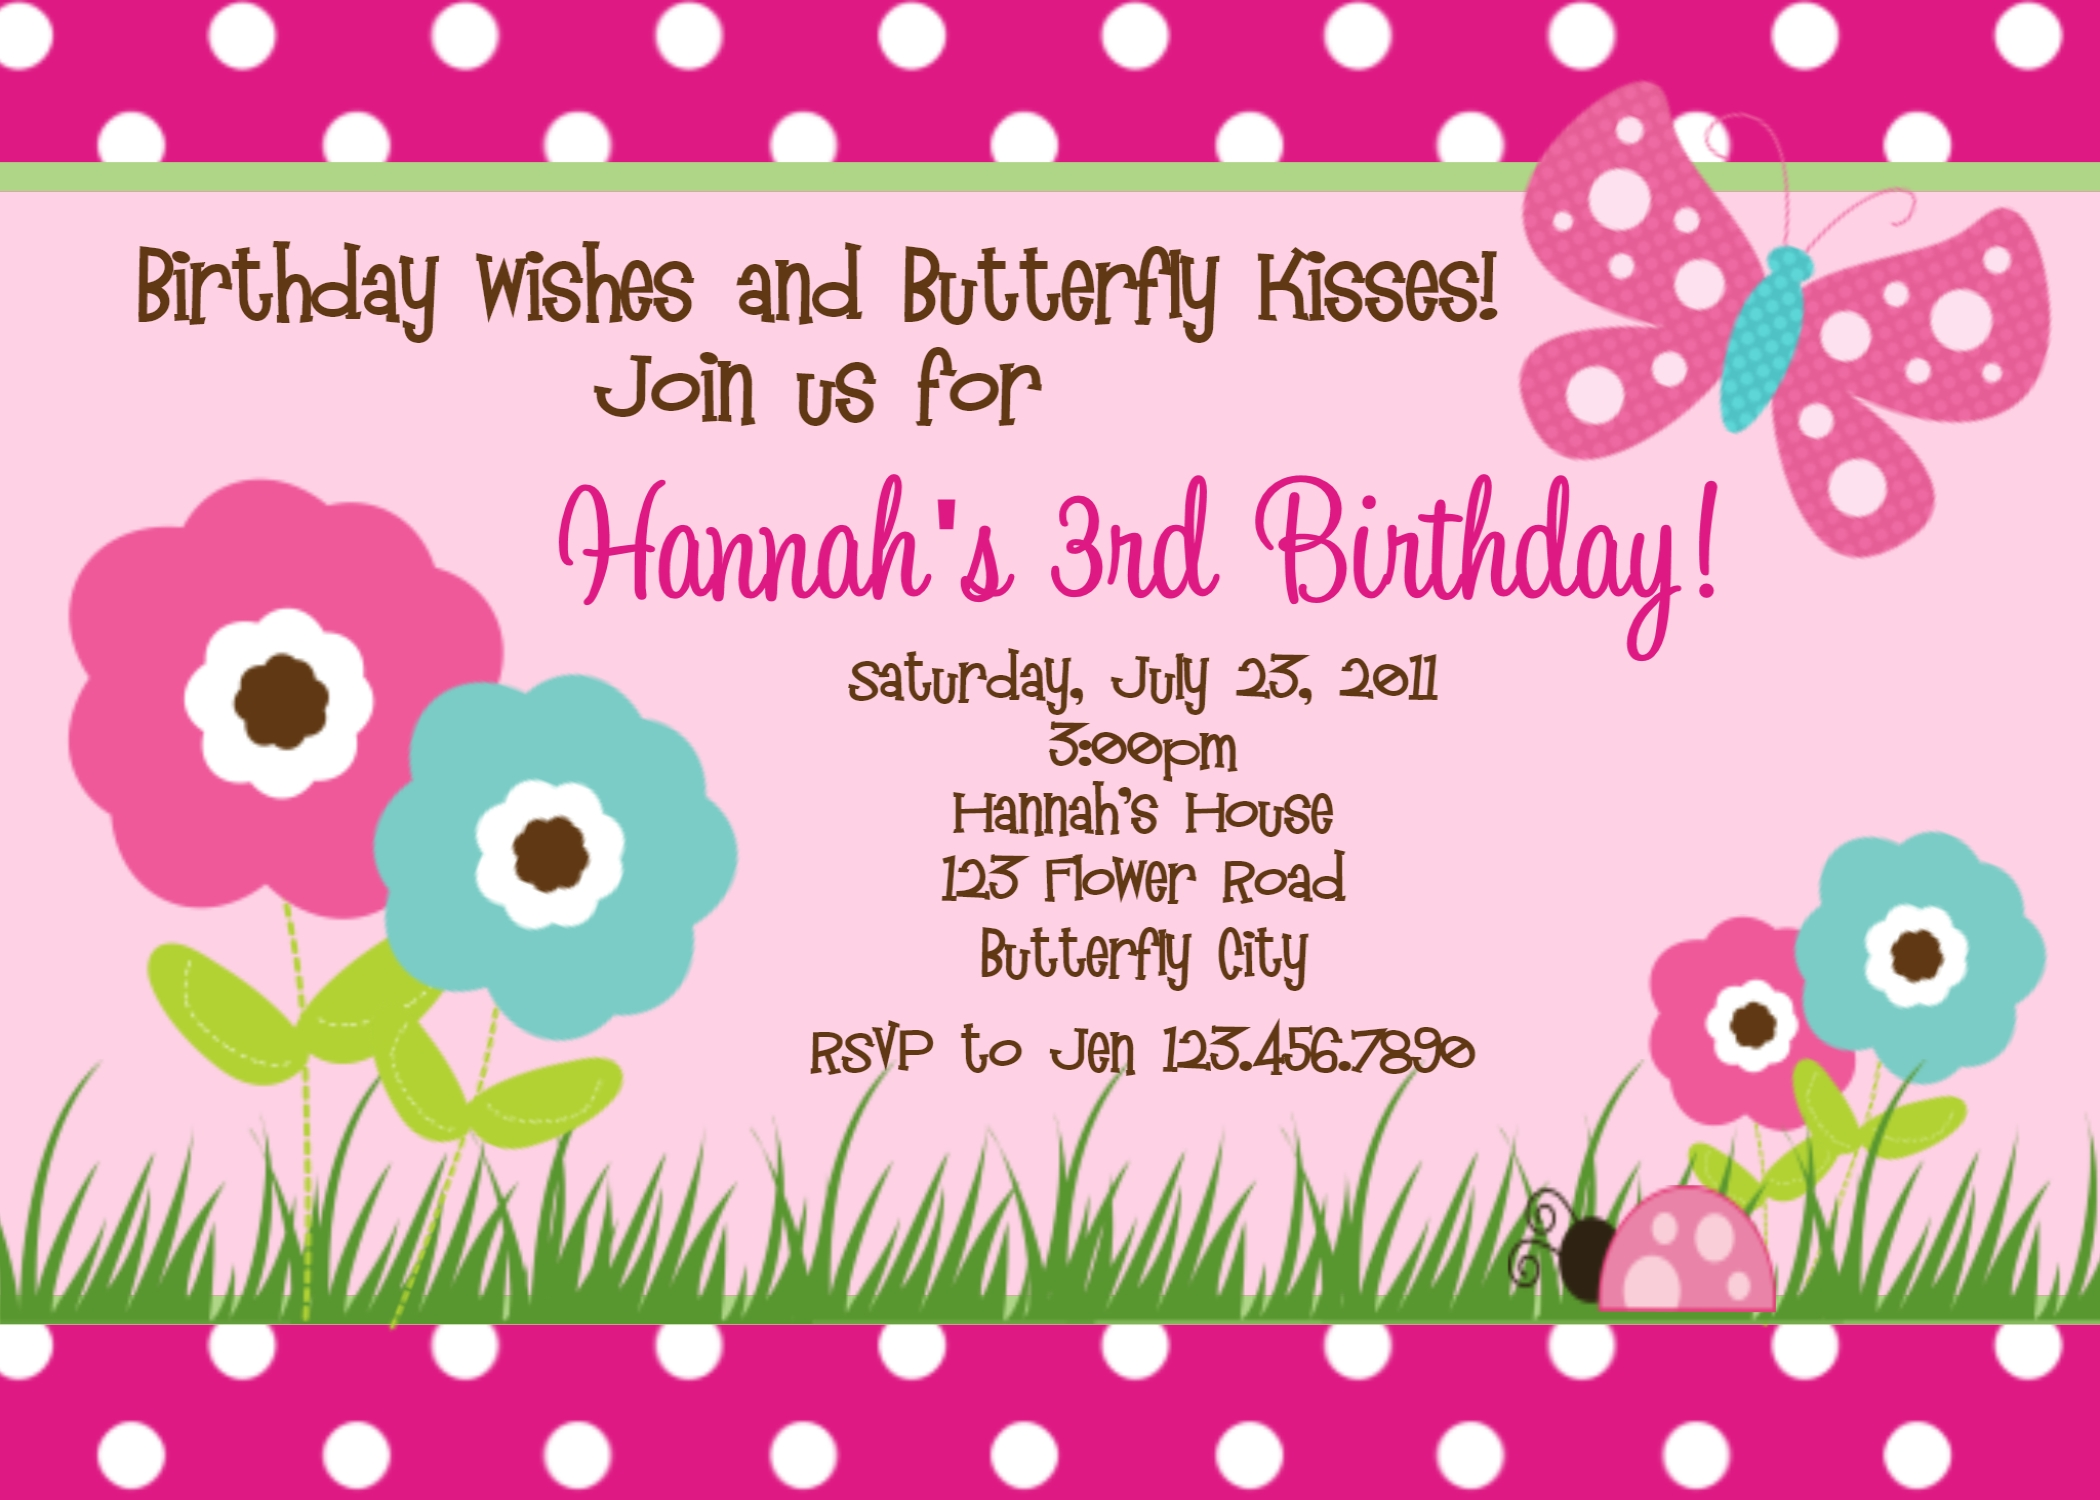 printable birthday invitations butterfly party little girl girls printable birthday invites